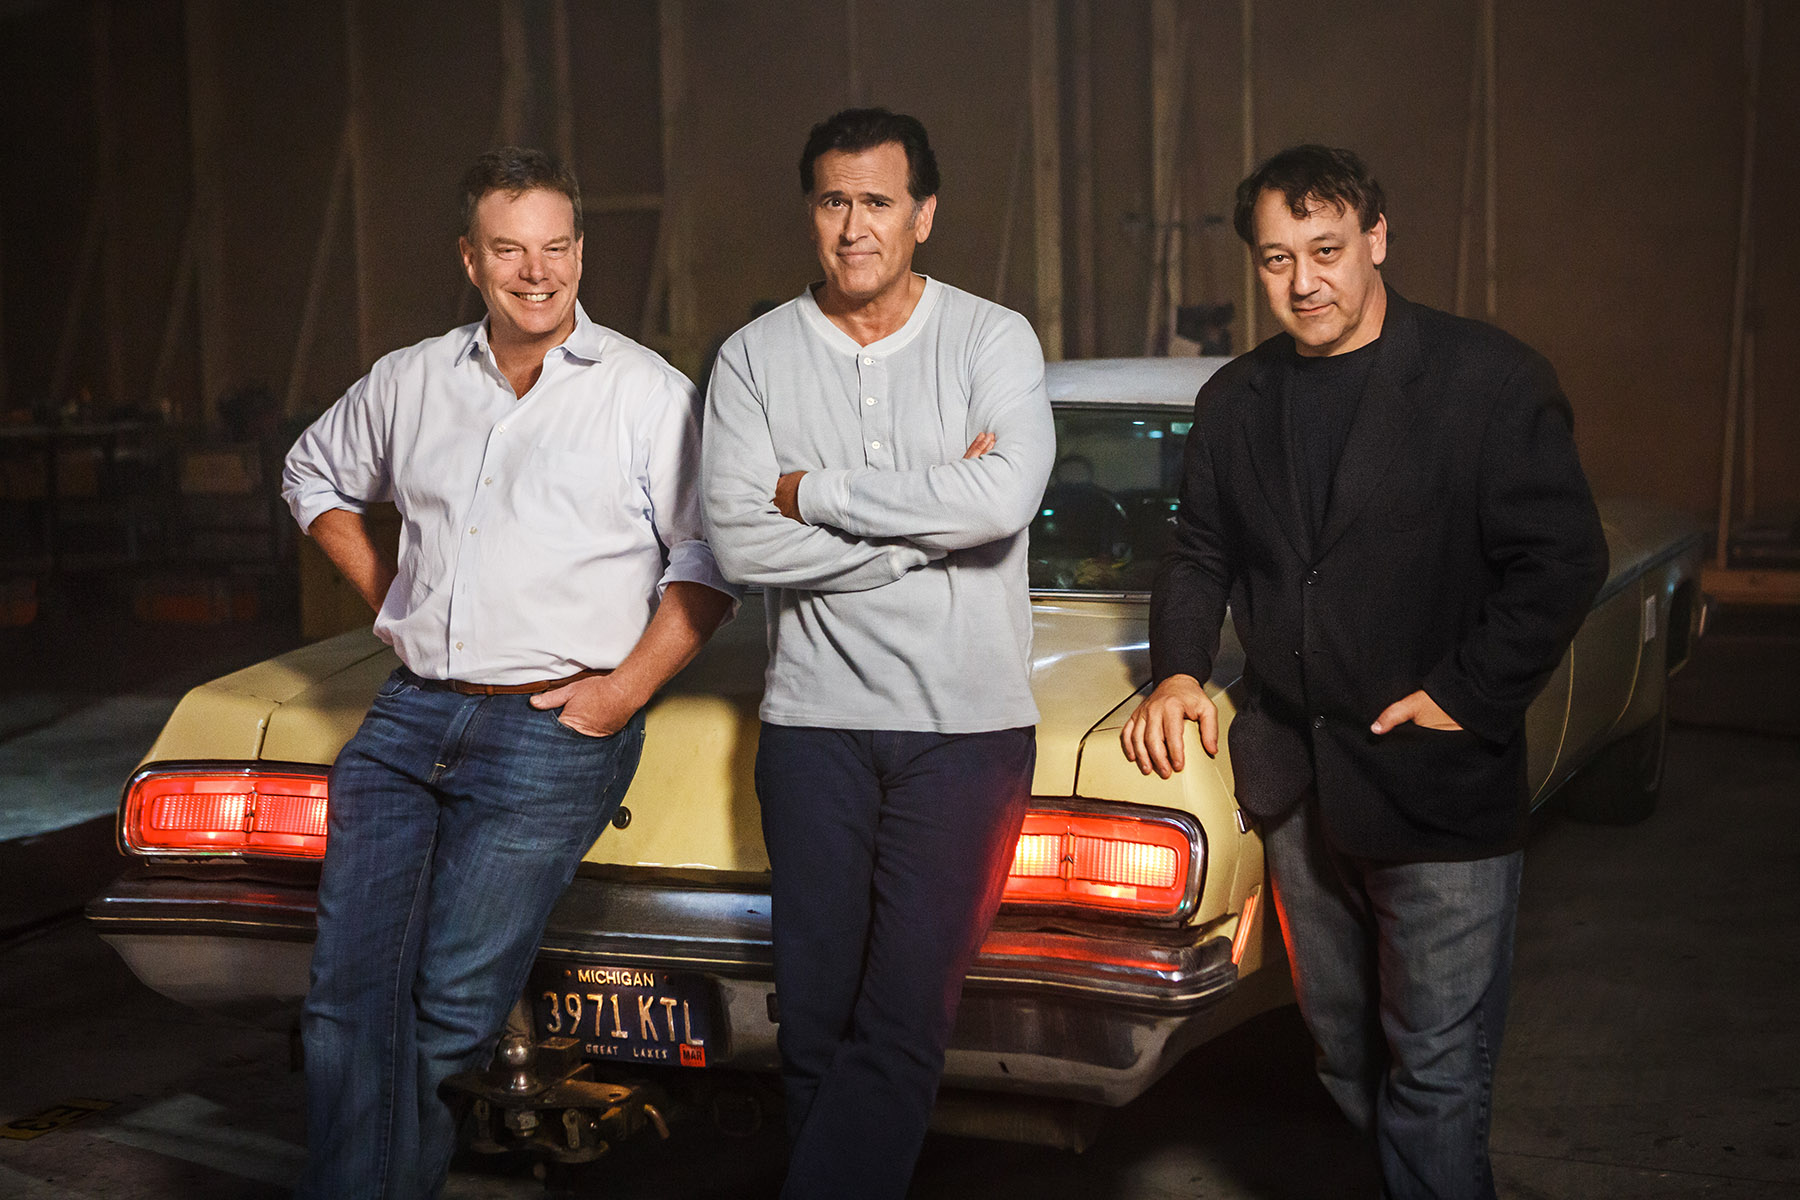 """PHOTO CAPTION: From left to right: Executive producer Robert Tapert, star of the series and executive producer Bruce Campbell along with executive producer Sam Raimi, original filmmakers of the EVIL DEAD franchise, start production on the TV series """"Ash vs Evil Dead"""" which will premiere this fall on Starz. PHOTO CREDIT: © 2015 Starz Entertainment, LLC"""